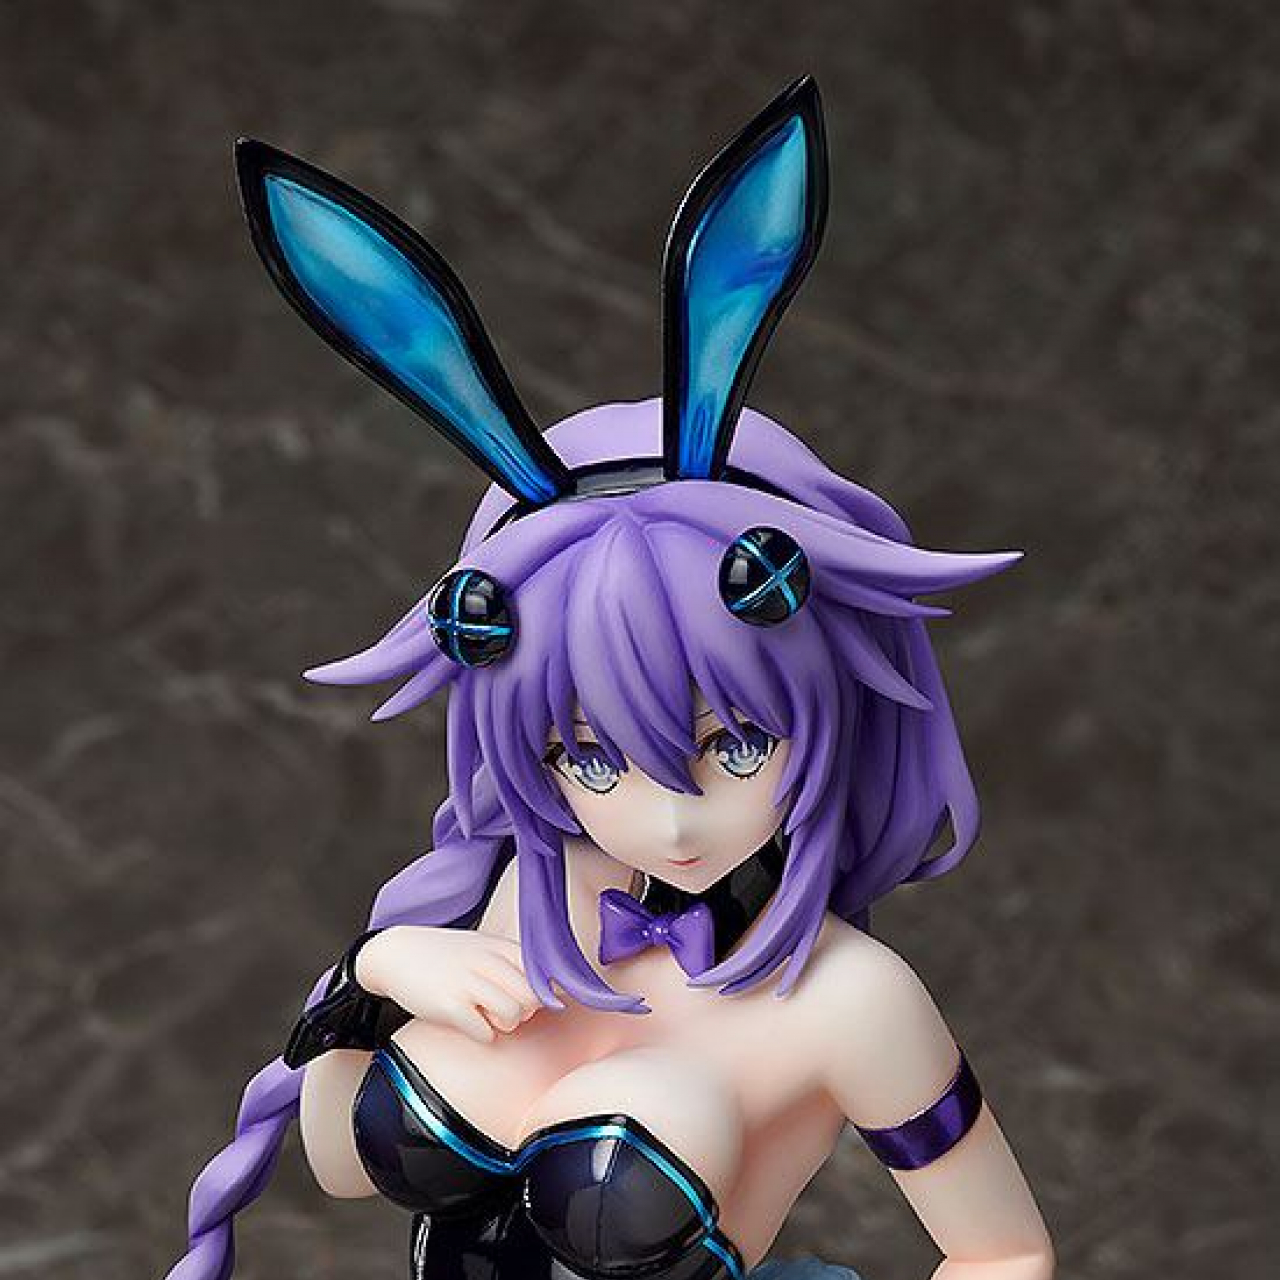 Hyperdimension Neptunia Statue 1/4 Purple Heart Bunny Version 47 cm